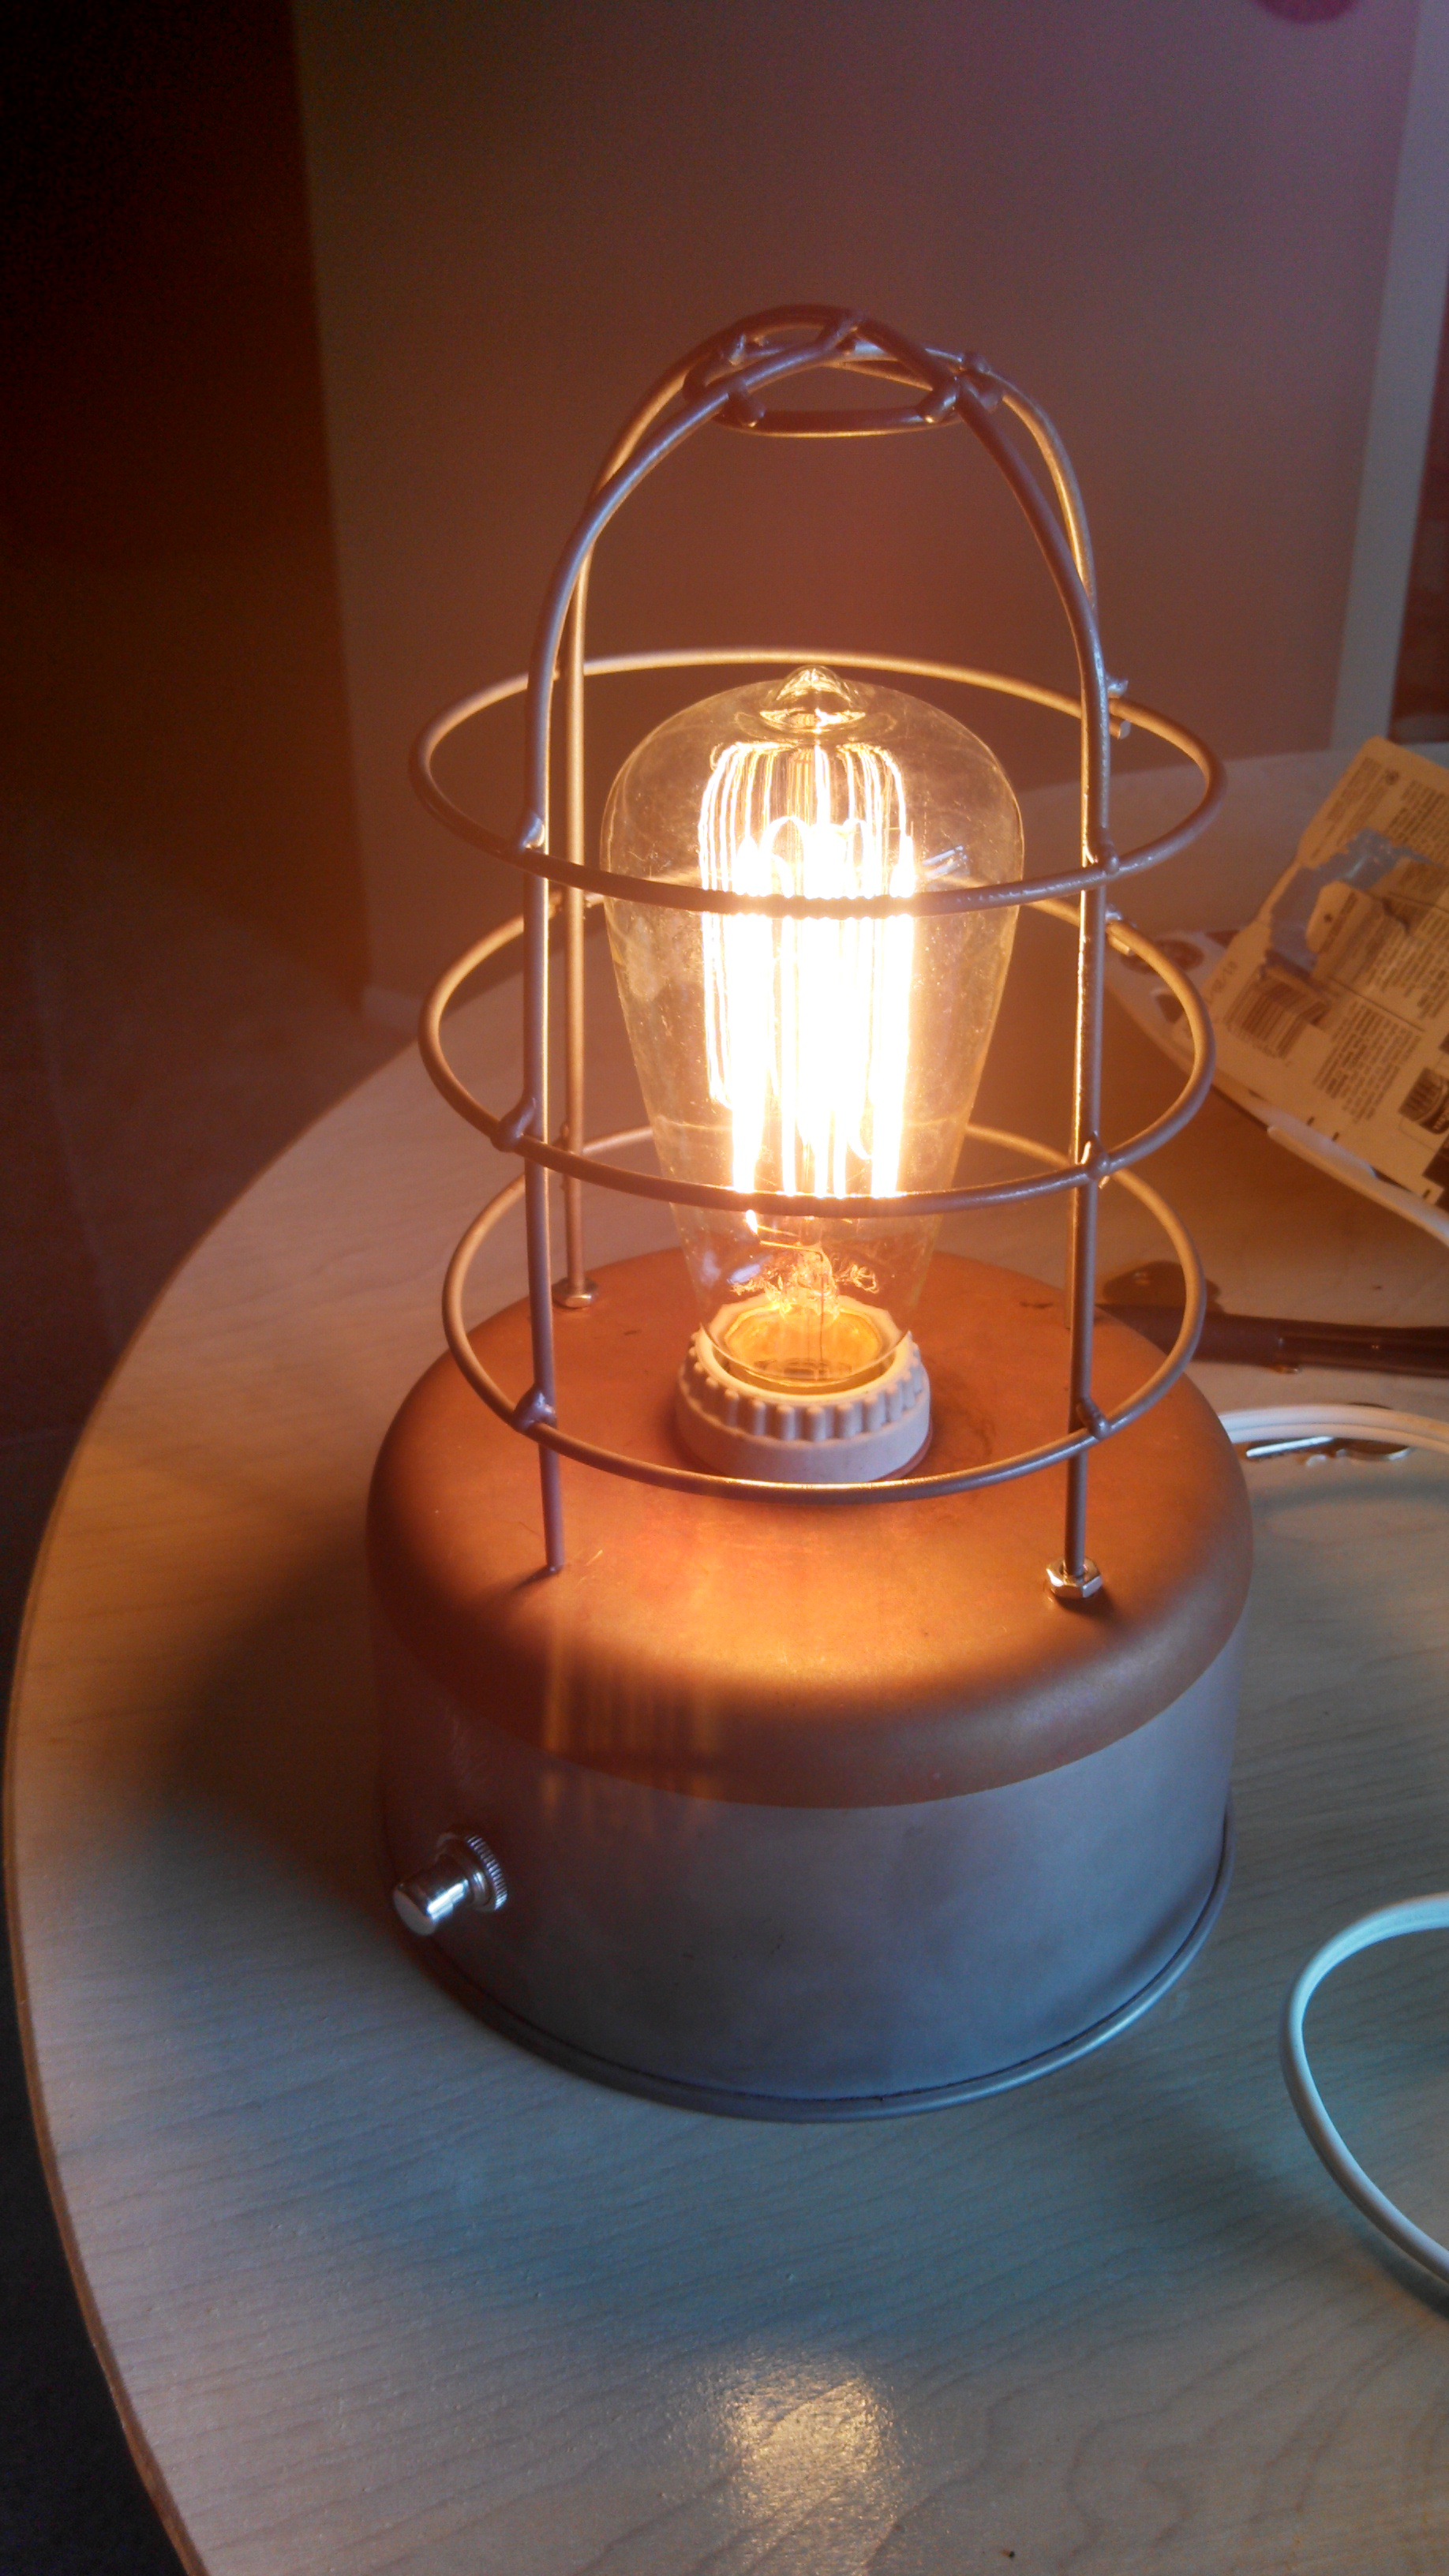 Elegant industrial style lamp made from old cooking pot. Up-cycle old pots and pans.